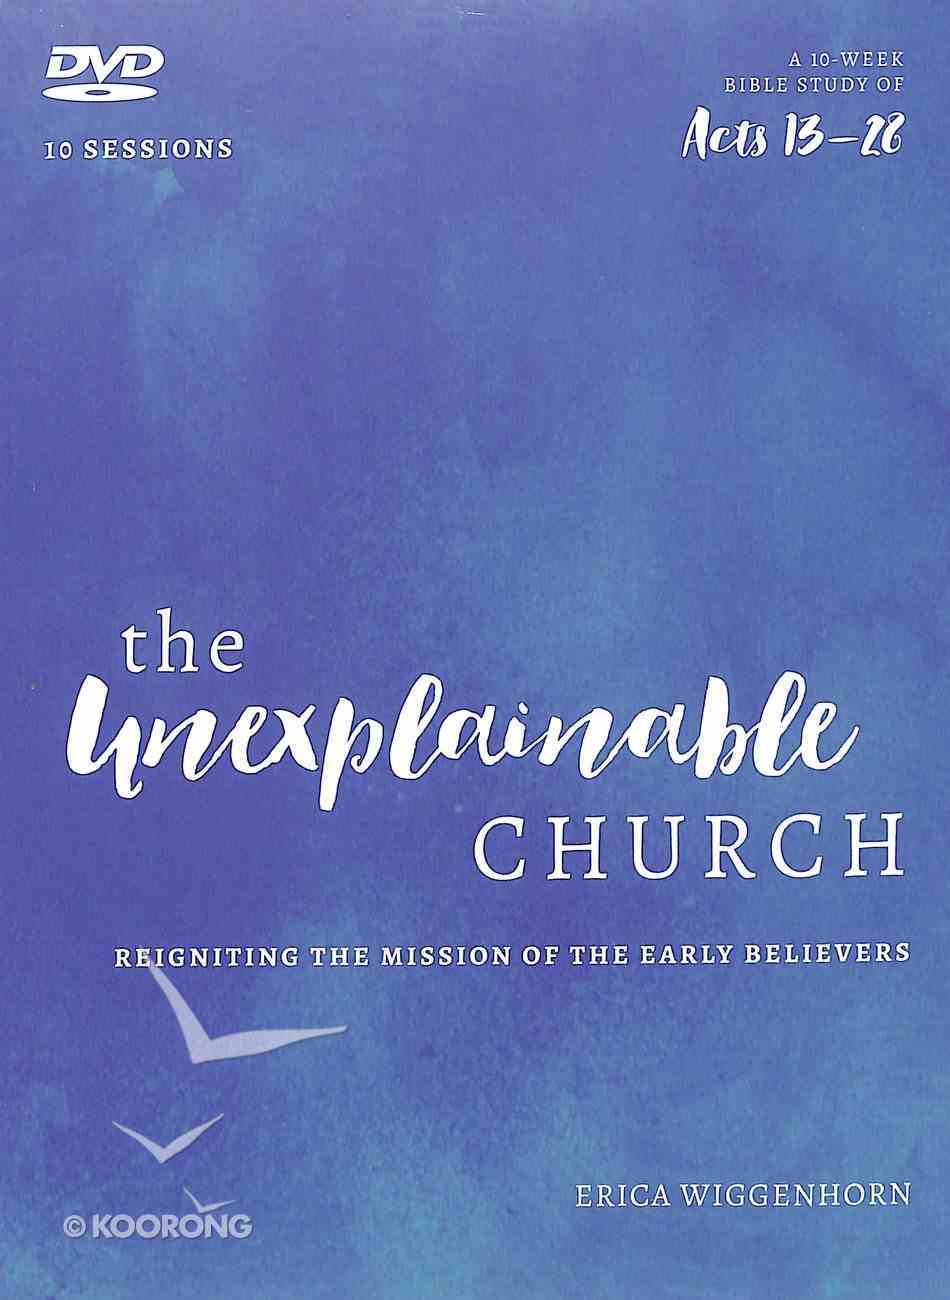 Unexplainable Church, the (A Study of Acts 13-28): Reigniting the Mission of the Early Believers (Dvd) DVD